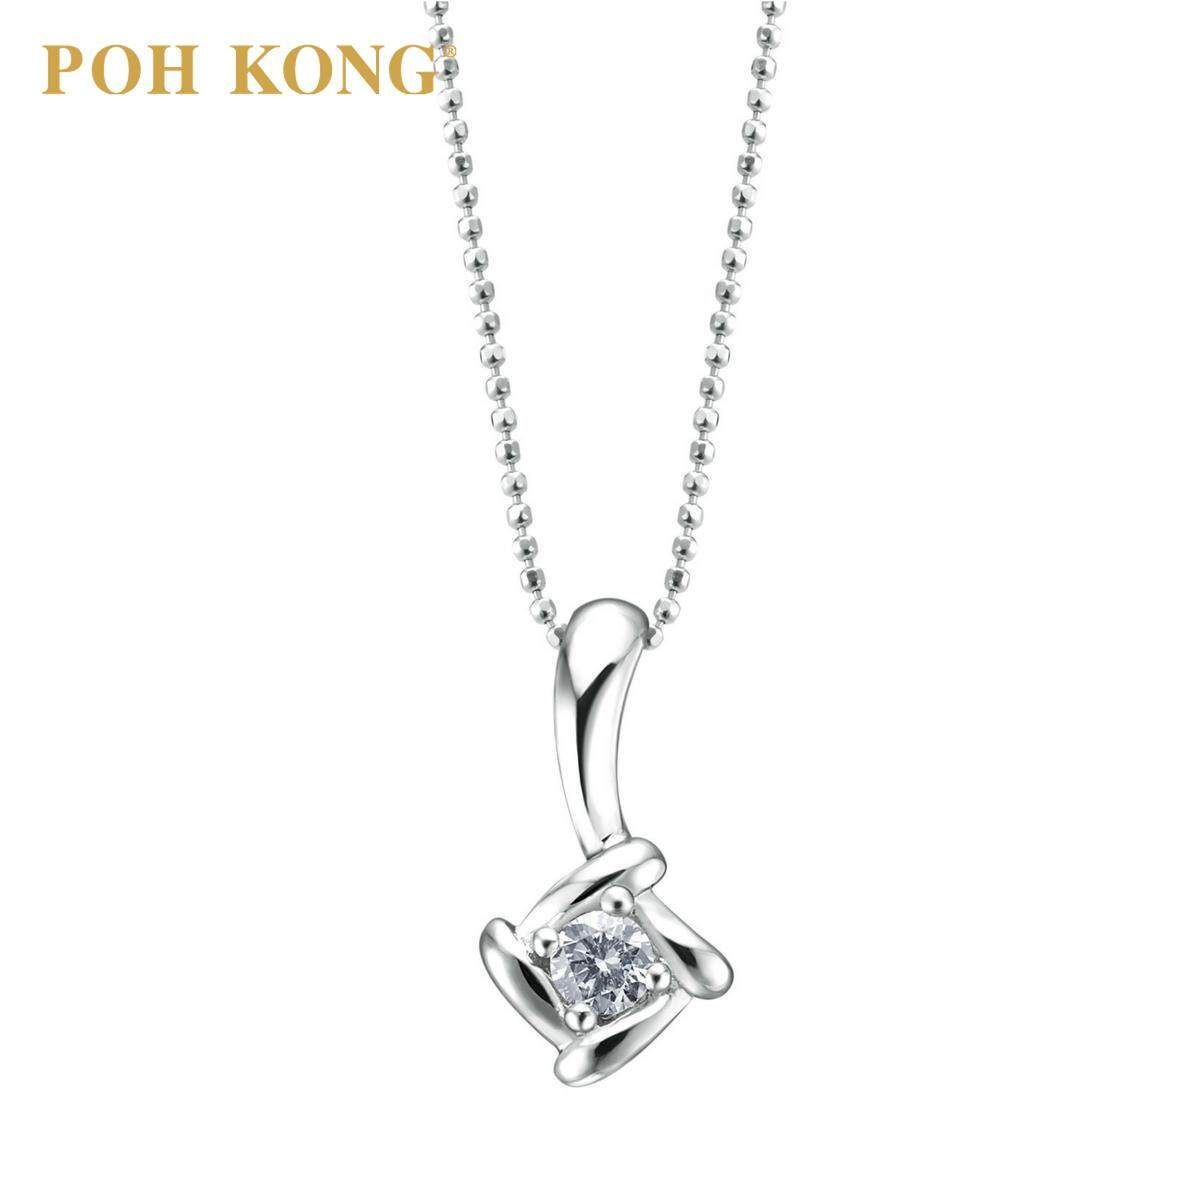 Poh Kong - Buy Poh Kong at Best Price in Malaysia   www lazada com my